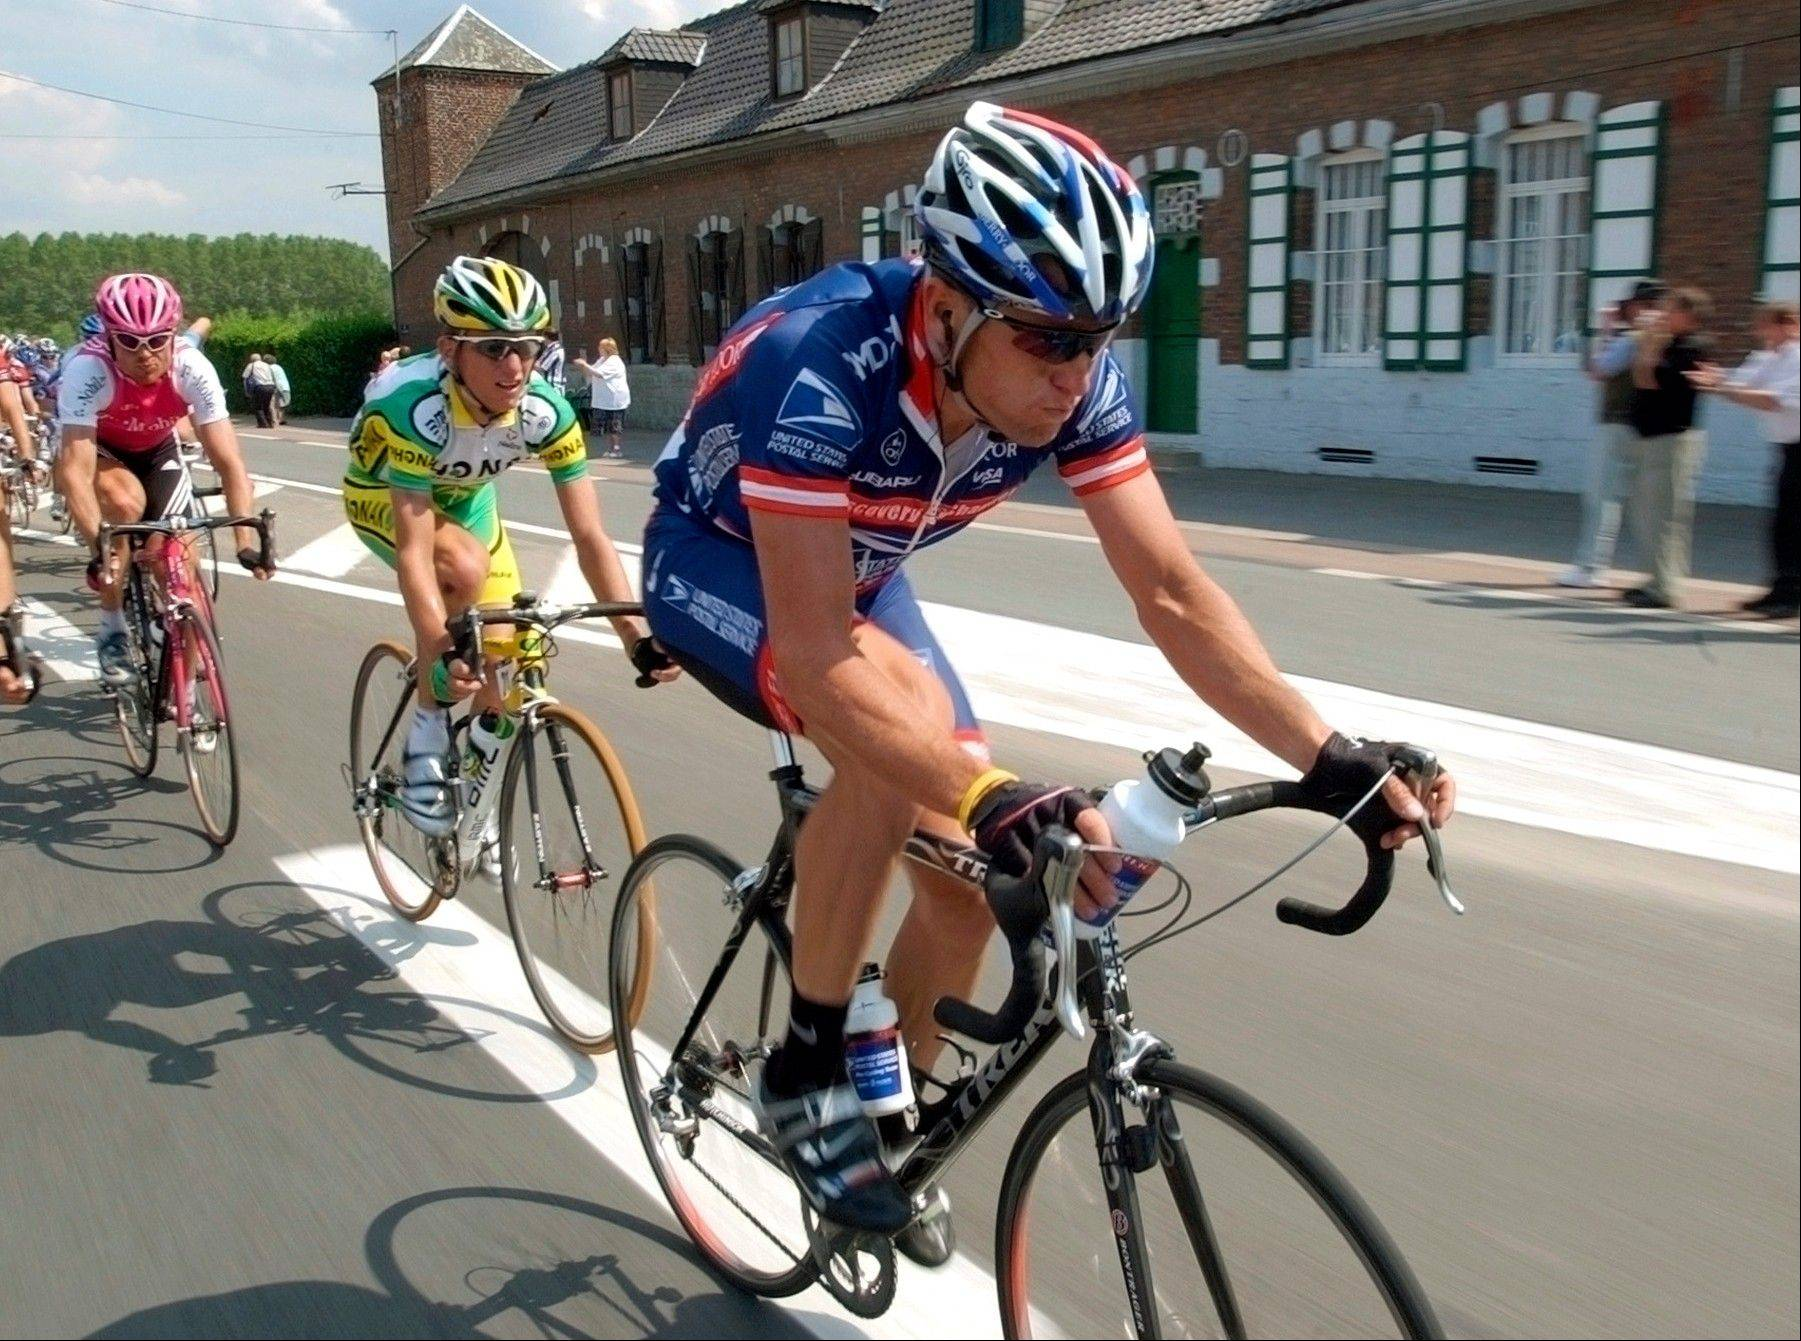 In this July 6, 2004, file photo, U.S. Postal Service�s Lance Armstrong rides ahead of Team Phonak�s Tyler Hamilton, center, and T-Mobile�s Jan Ullrich, of Germany, during the third stage of the Tour de France cycling race. Former International Cycling Union president Hein Verbruggen defended the governing body�s doping policy during the Lance Armstrong era, and said it acted appropriately when it informed riders about suspicious test results.